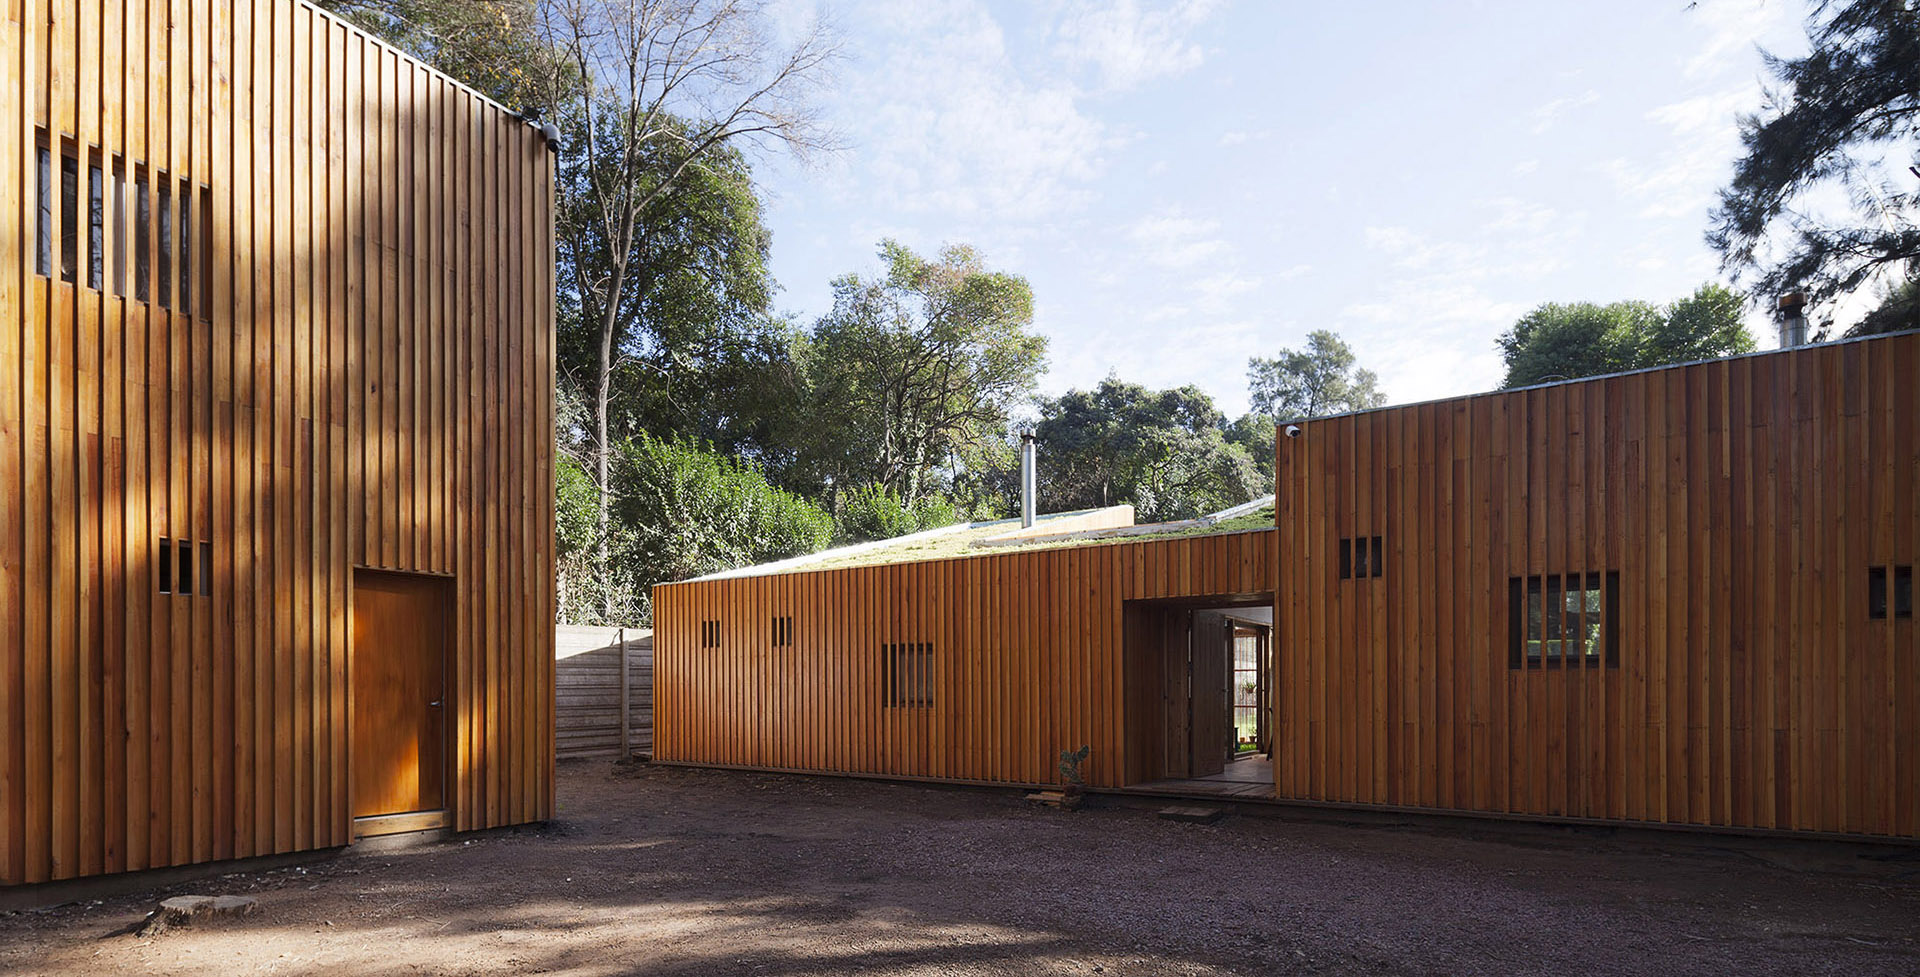 Casa AA - House surrounded by trees